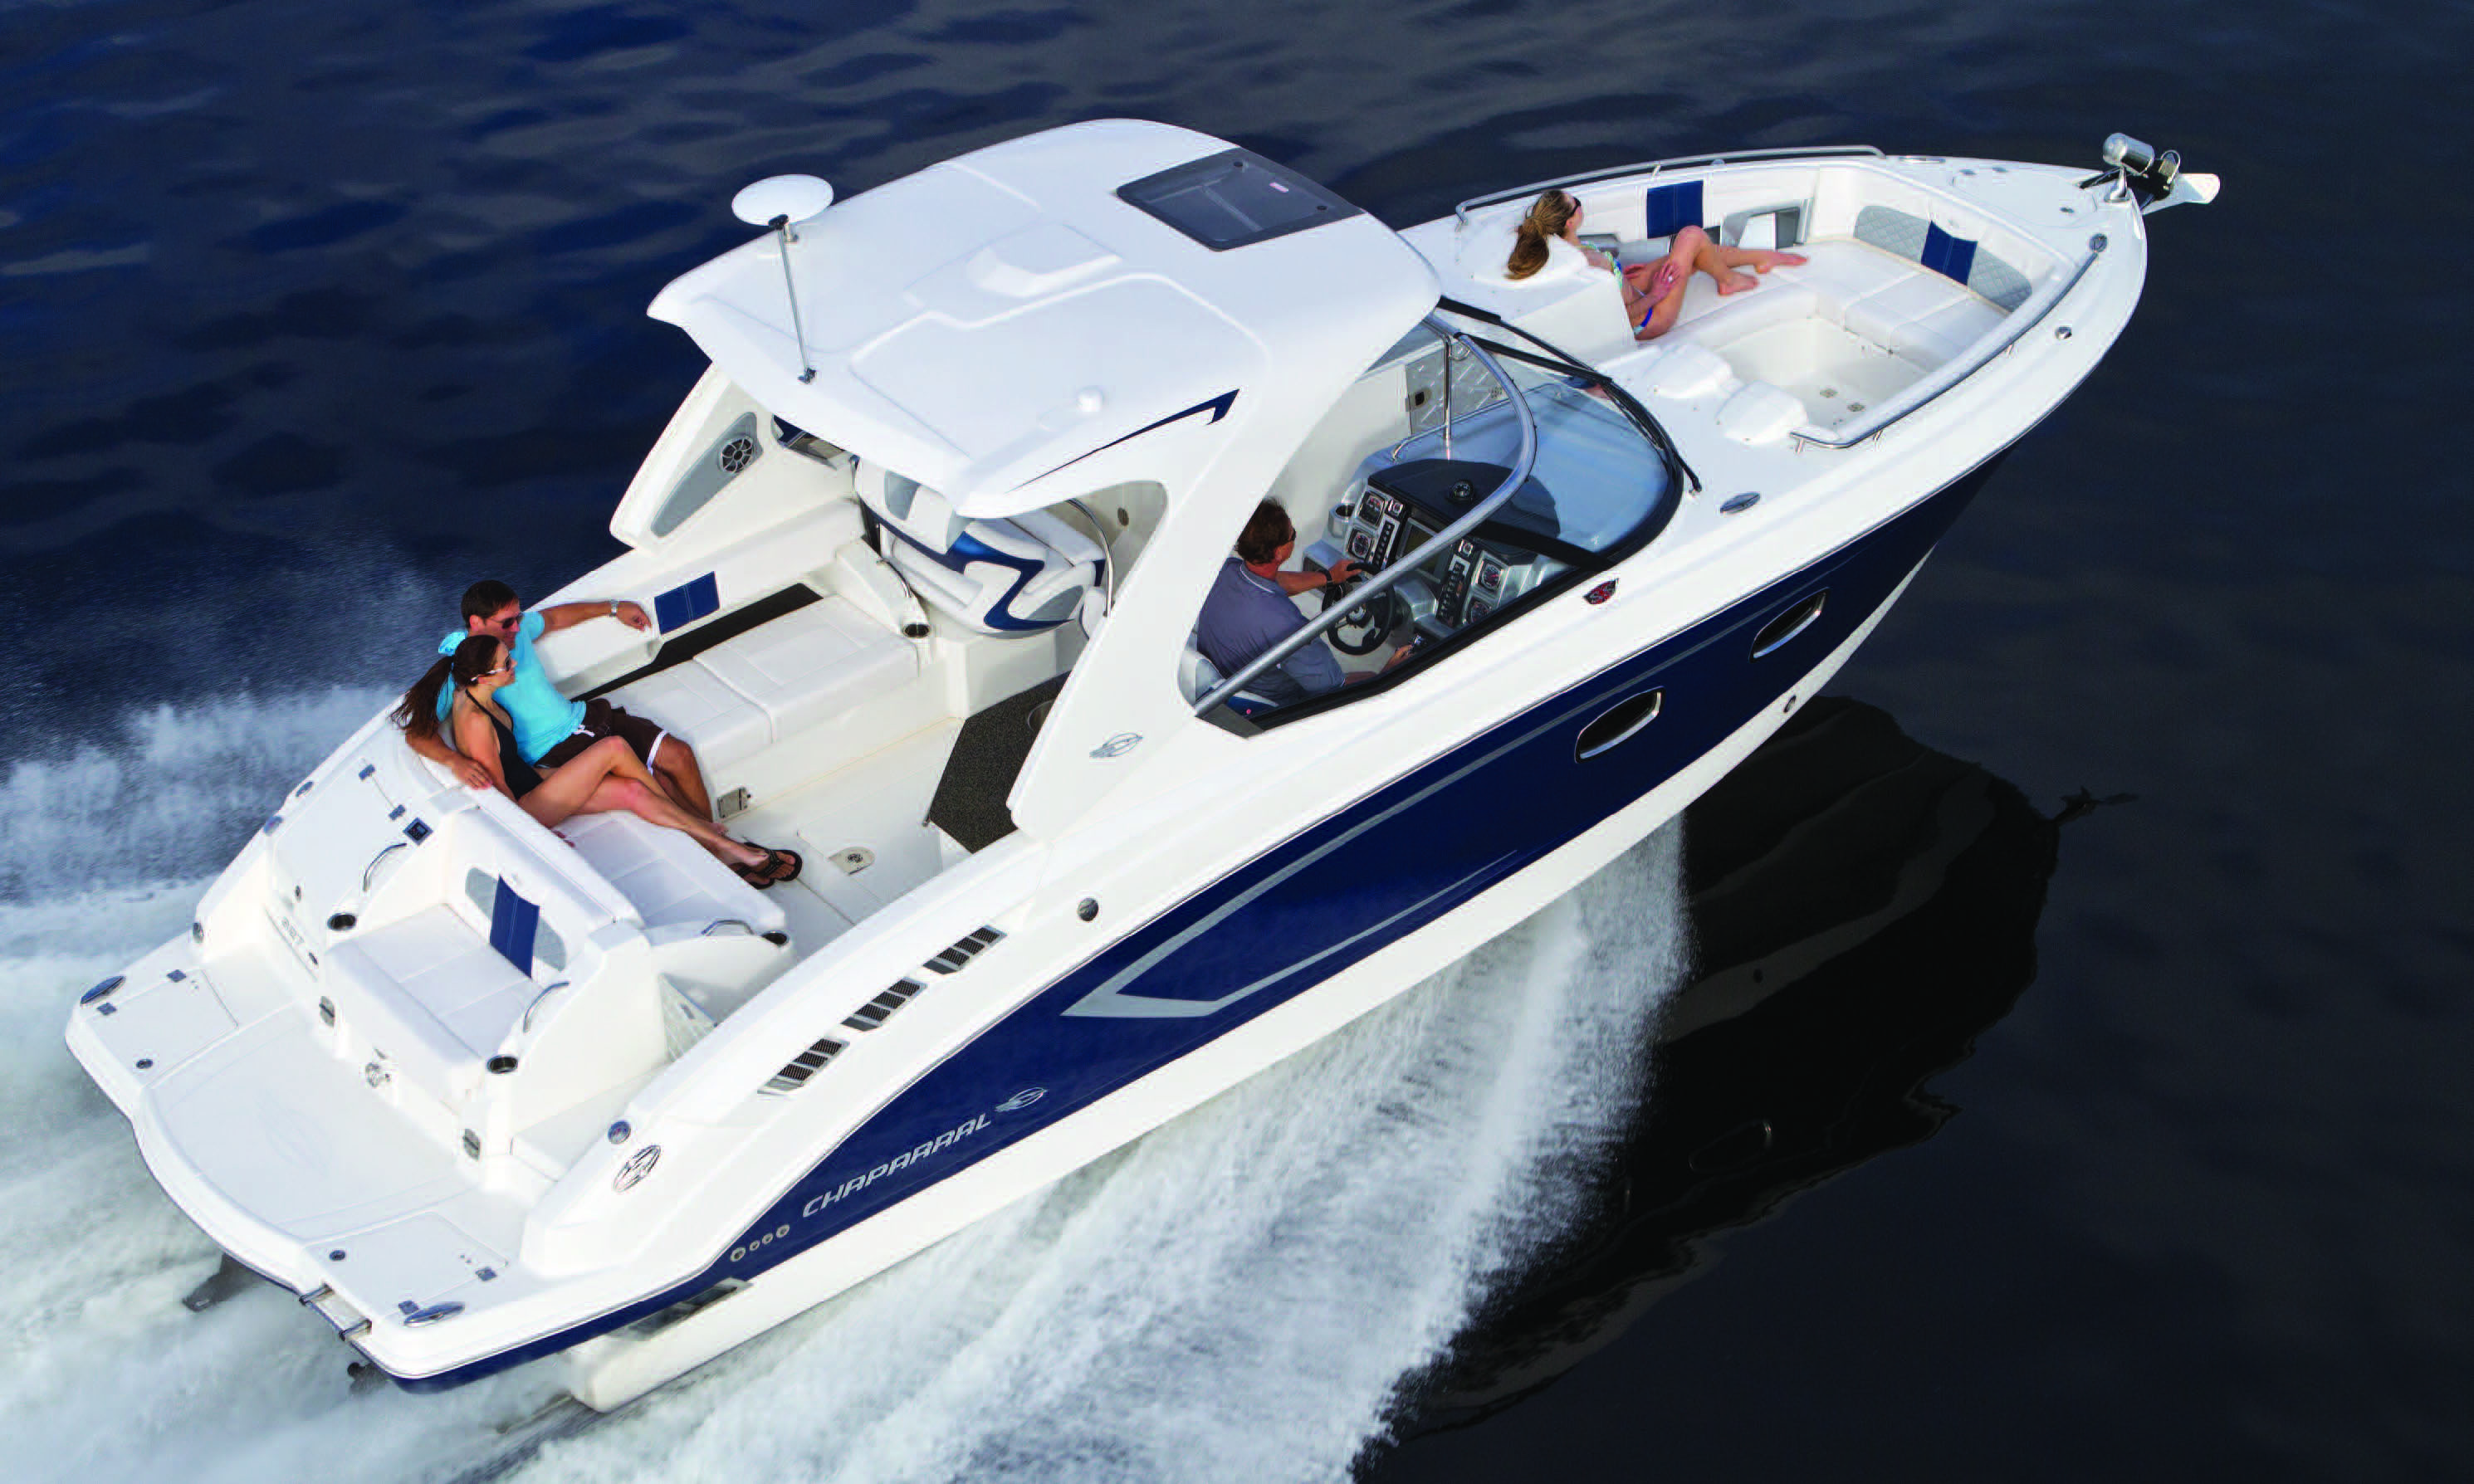 Chaparral 327 ssx boat for sale in Newport Beach